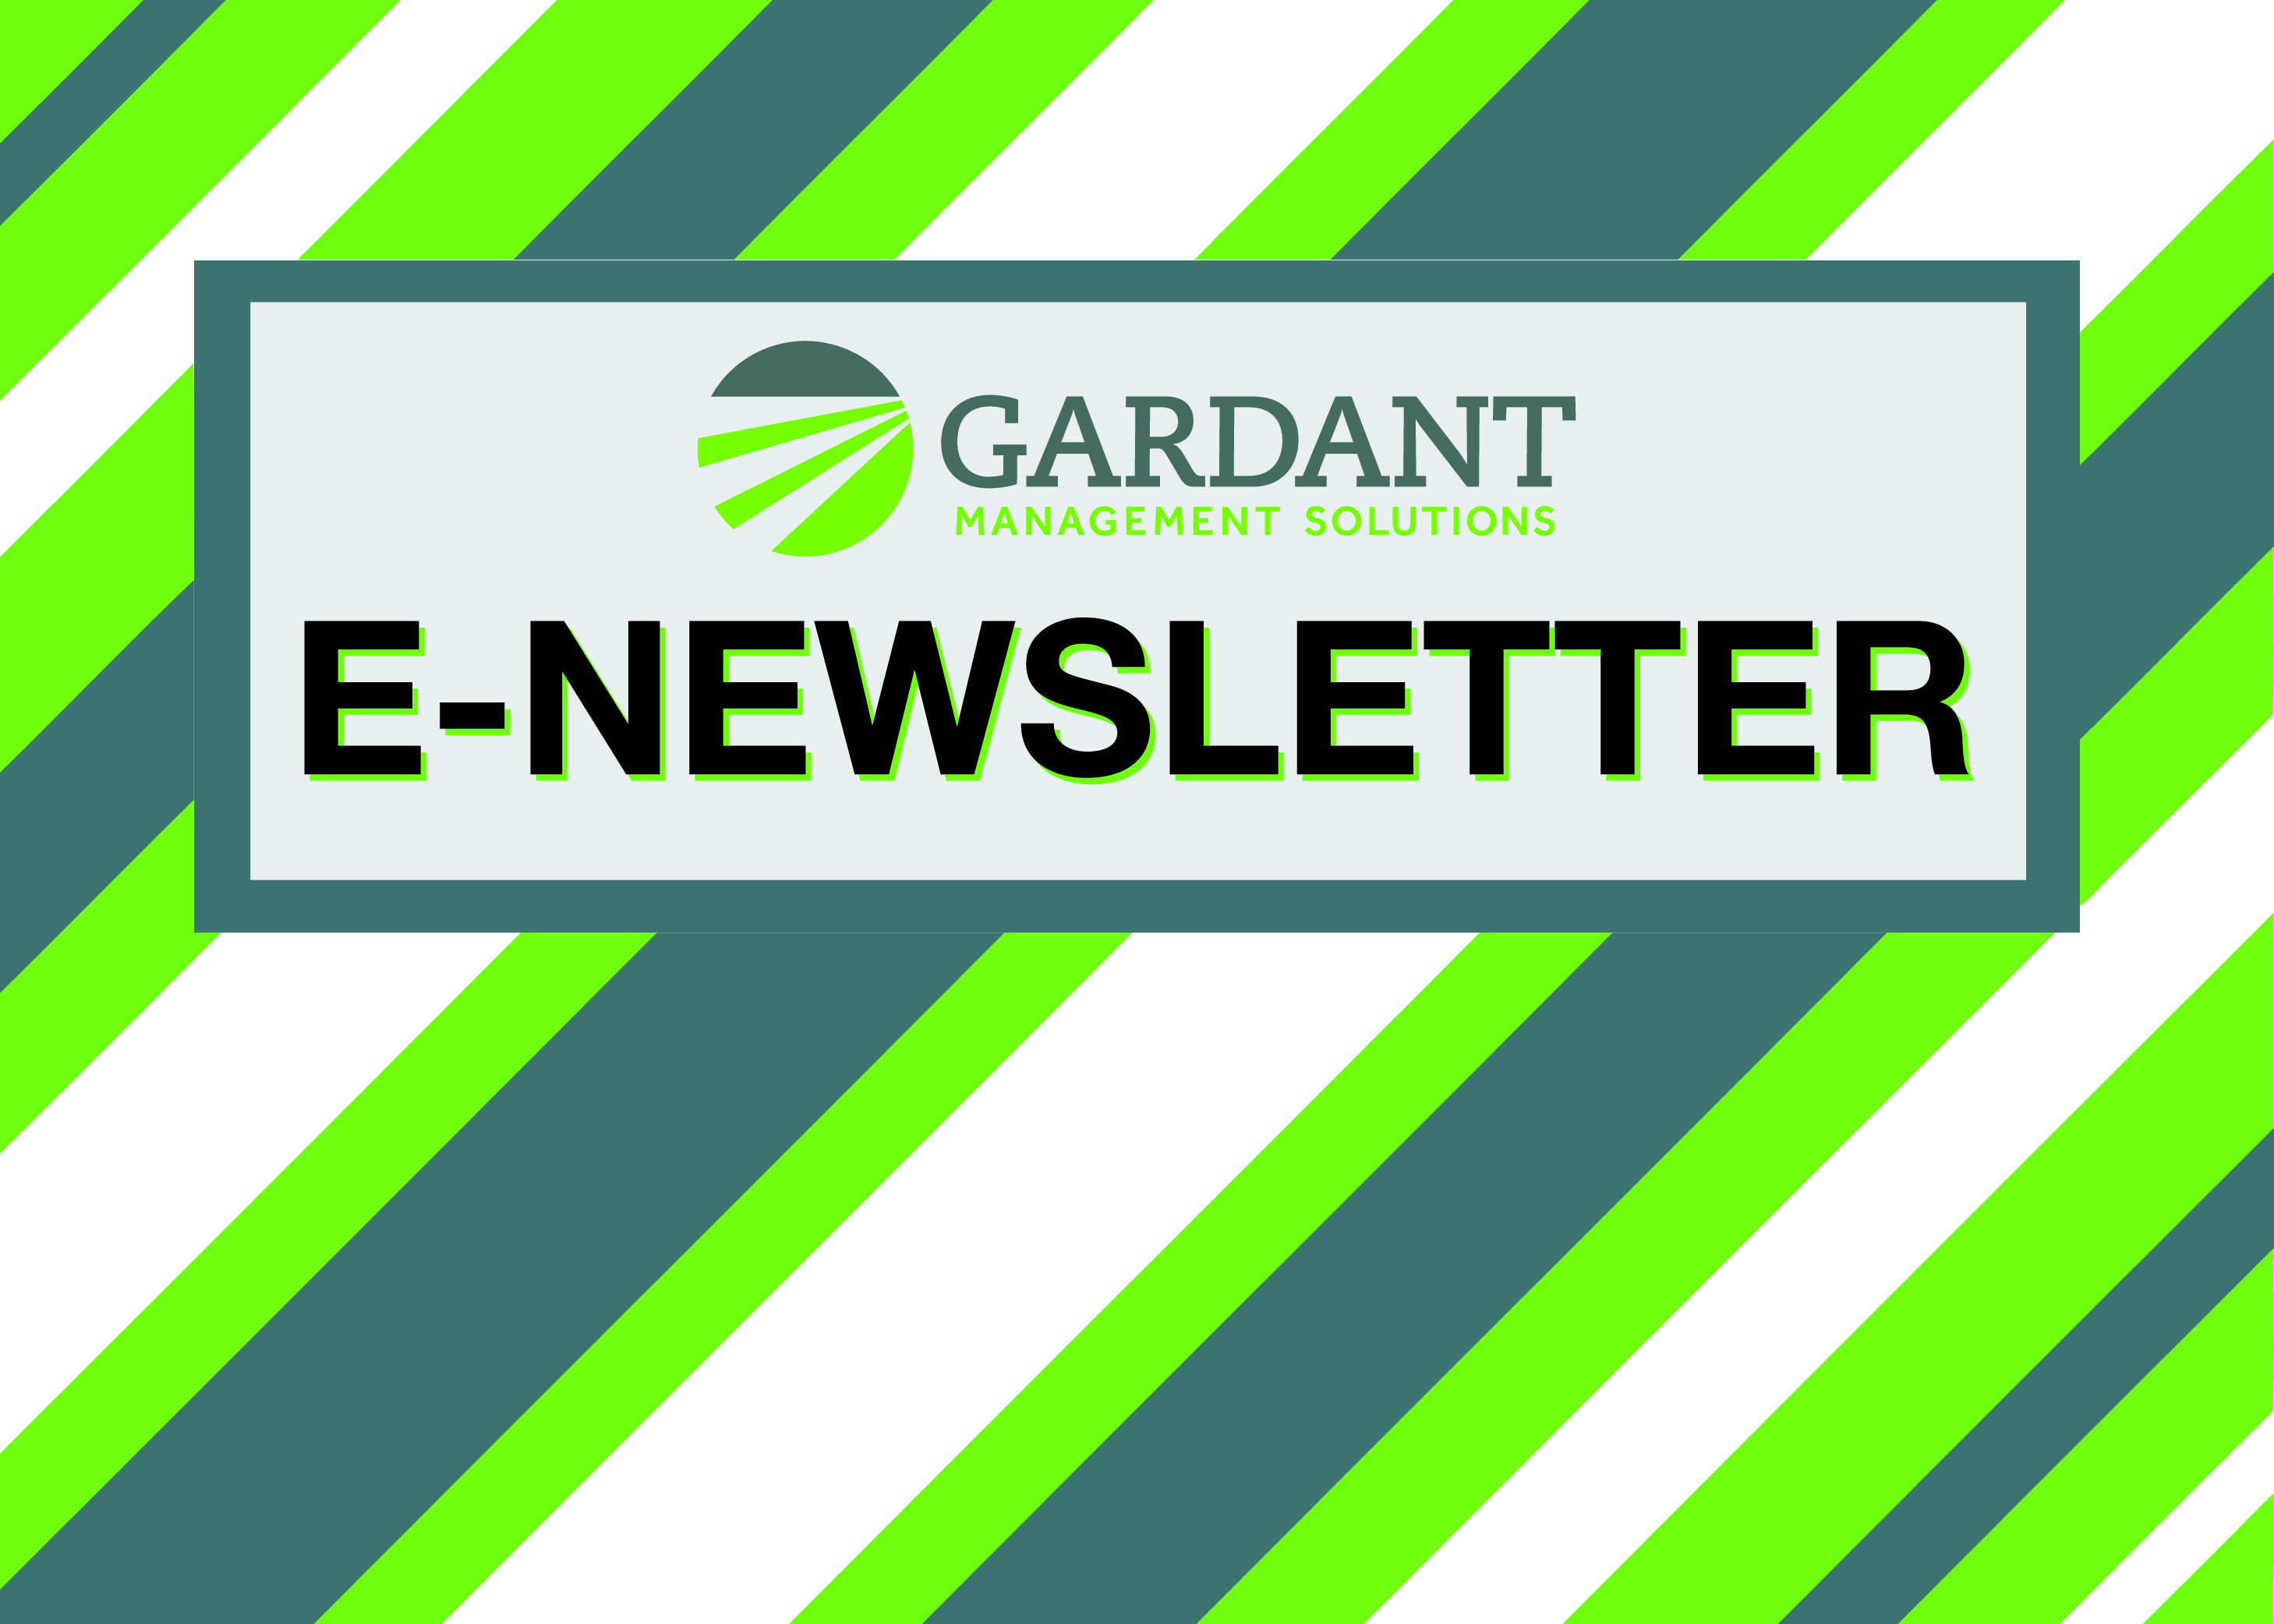 May 2018 Newsletter - Gardant Management Solutions